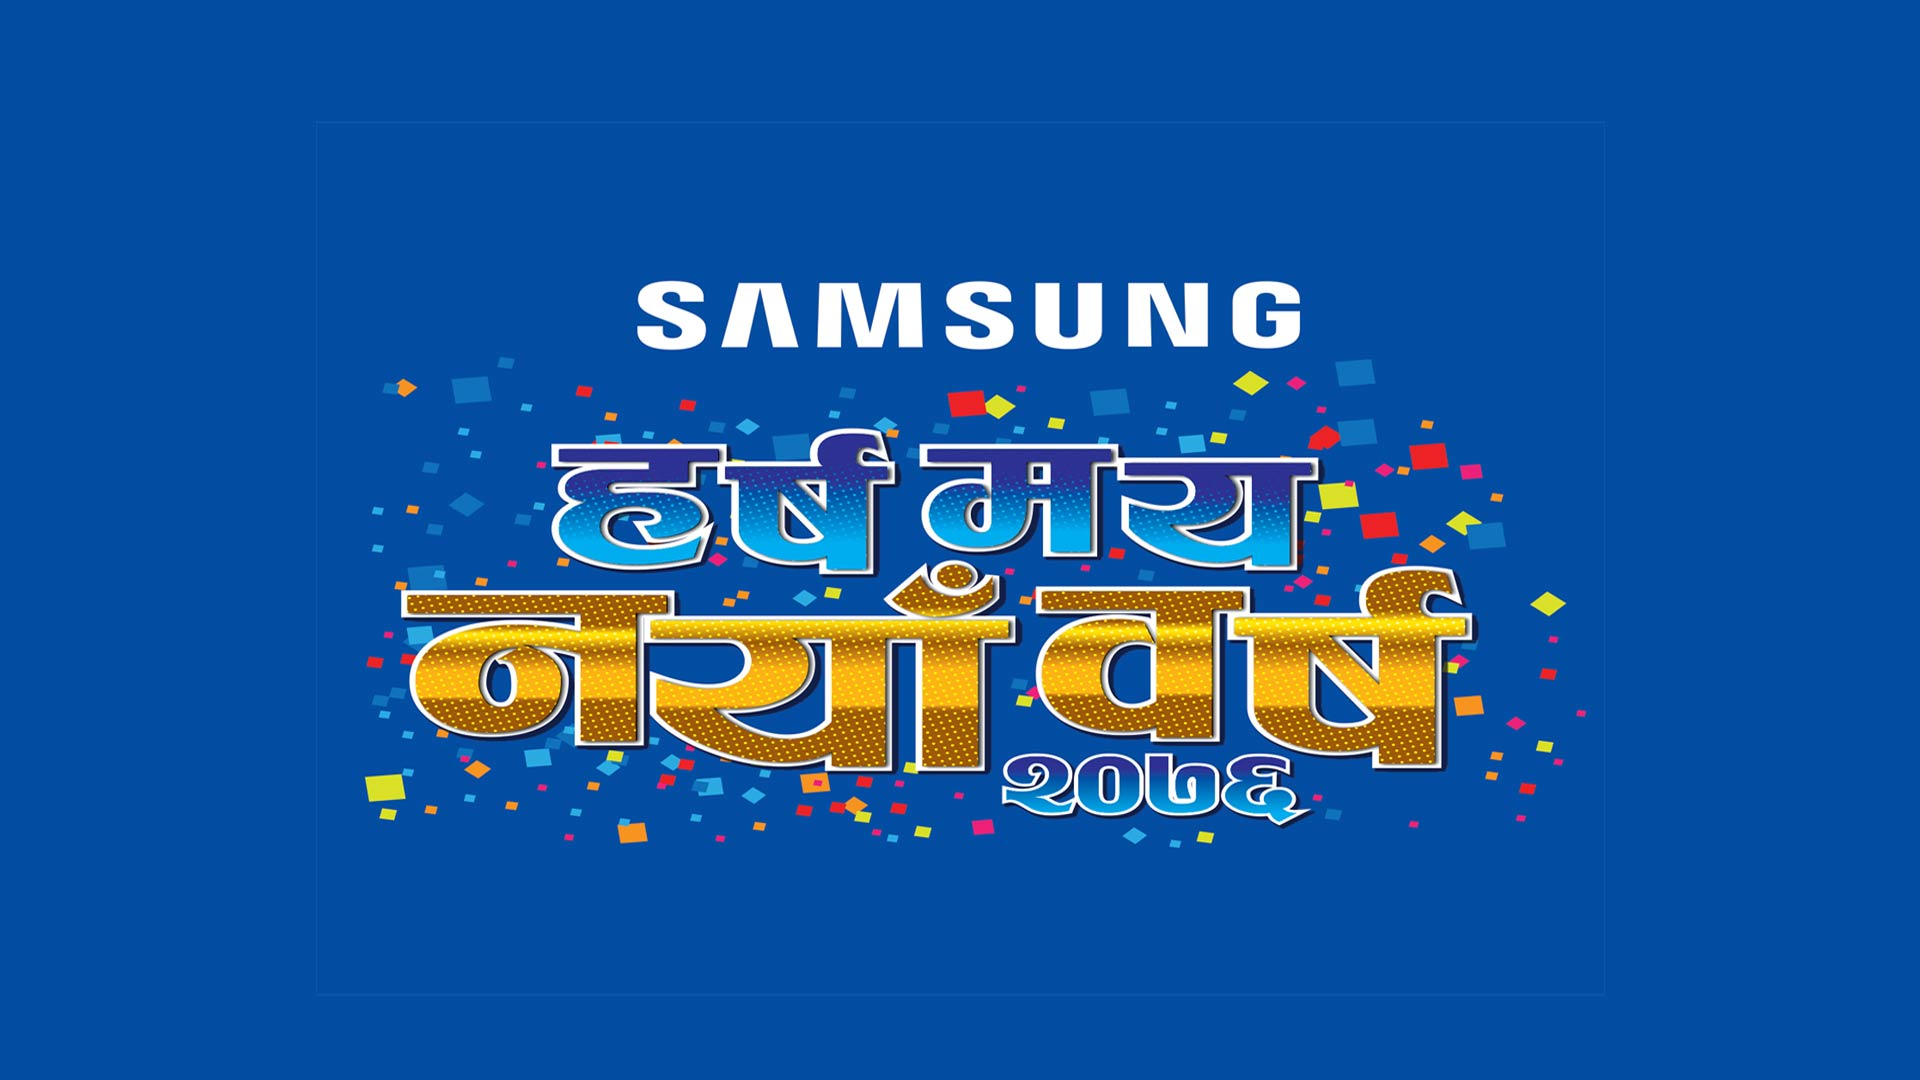 Samsung New Year 2076 offer in Nepal